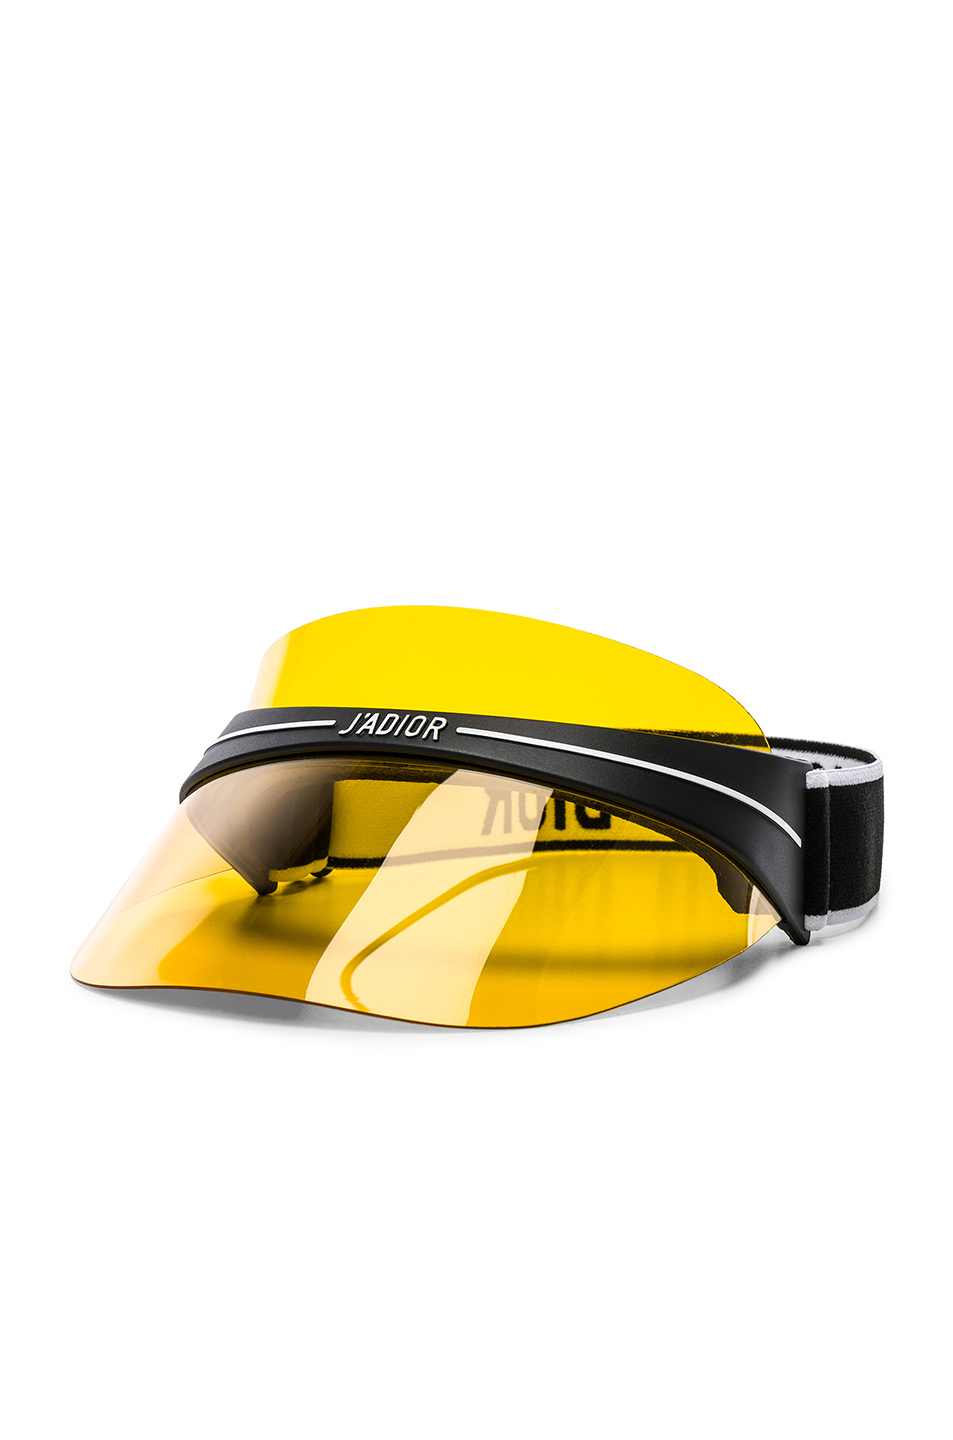 05cd03cc36c3 Buy Original Dior Club 1 Visor at Indonesia